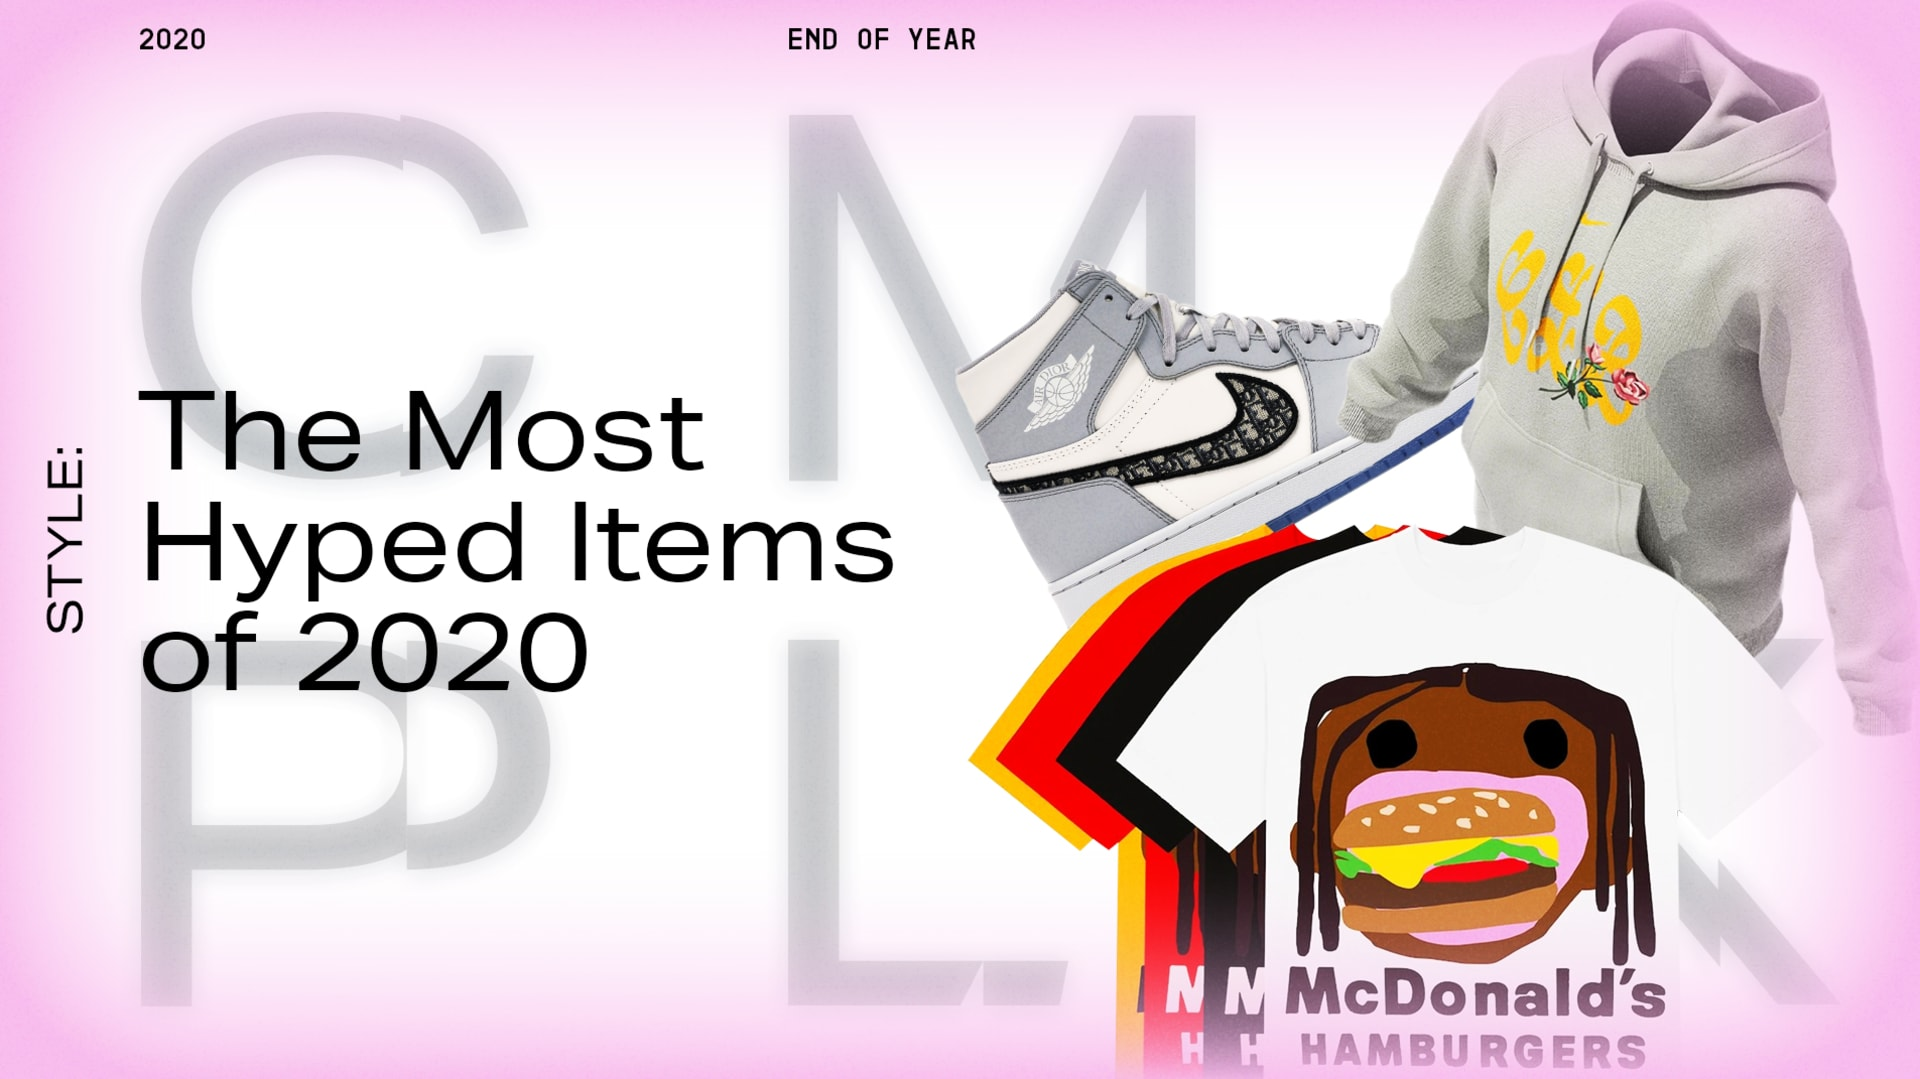 Most Hyped Items 2020